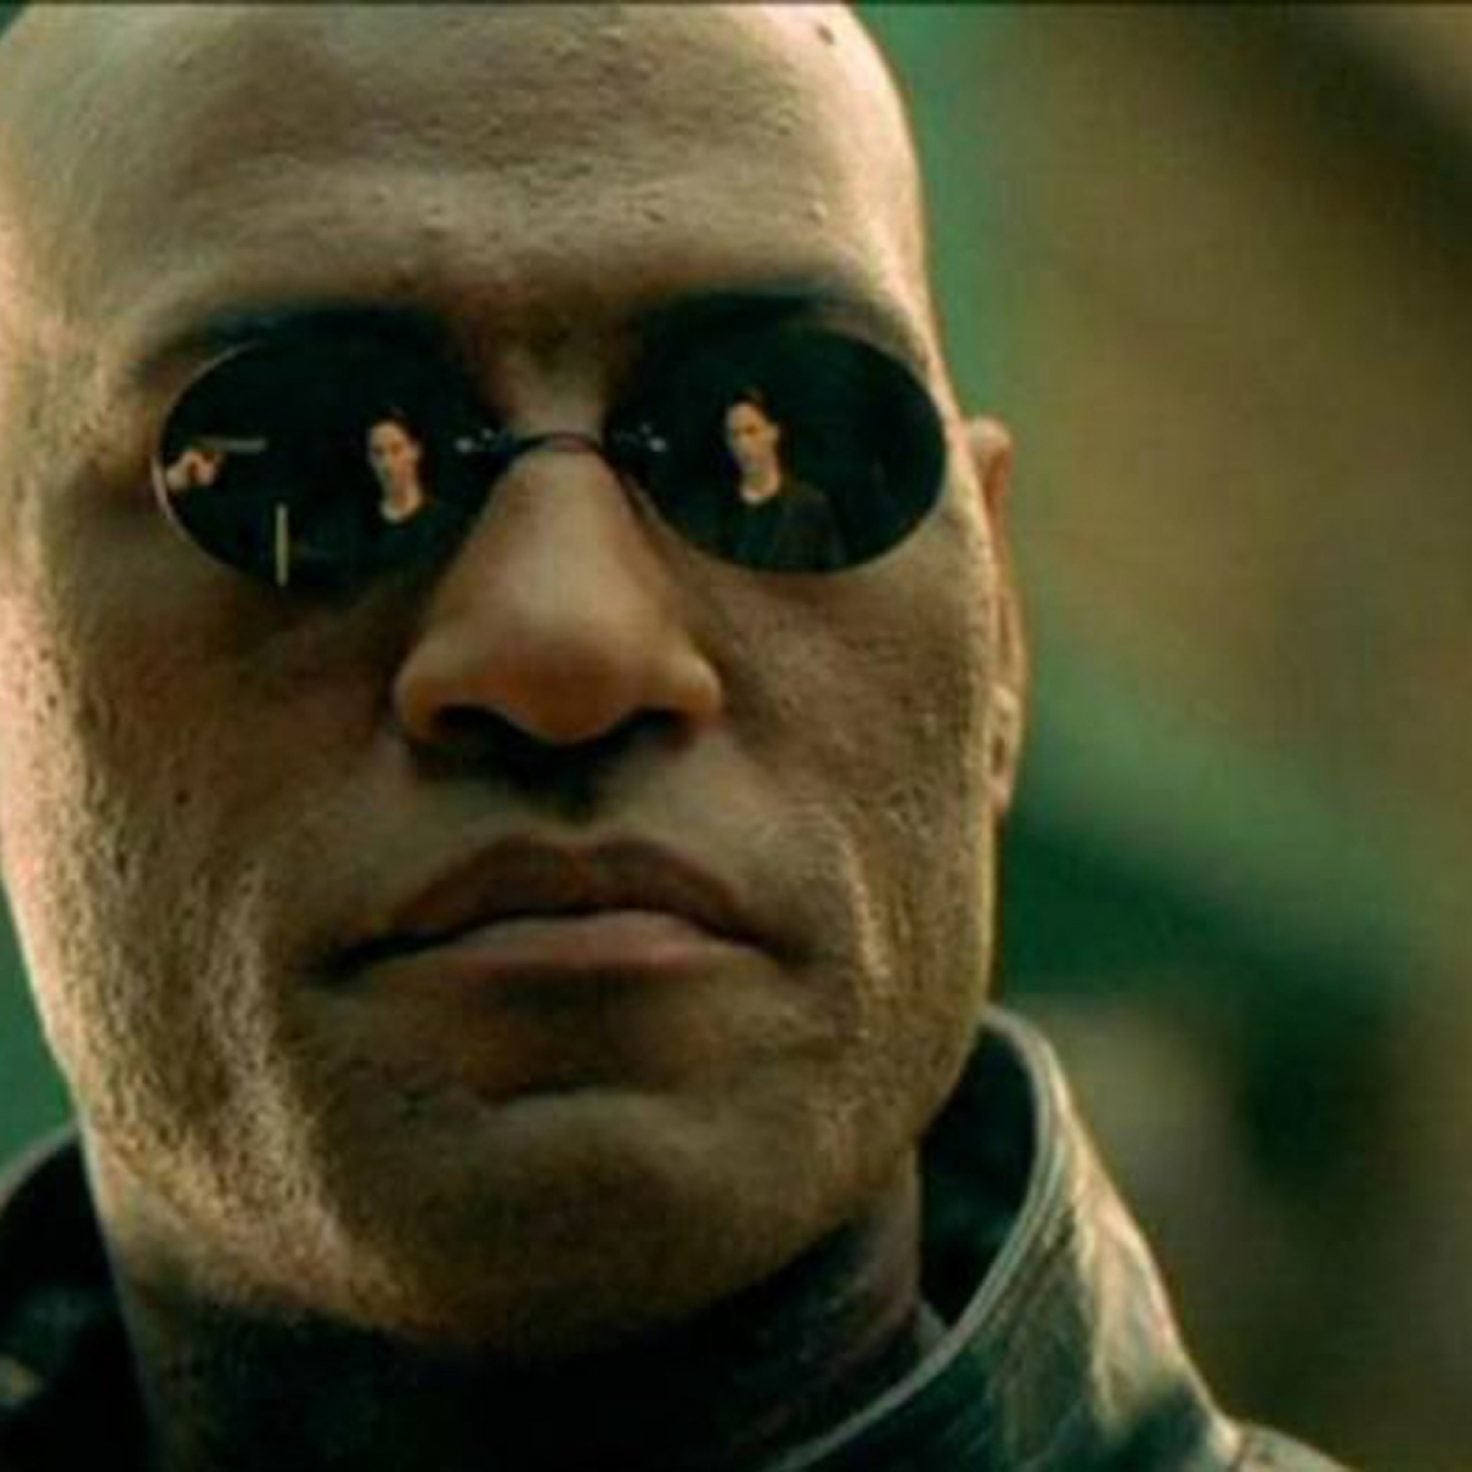 Laurence Fishburne Says He 'Wasn't Invited' To Appear In 'The Matrix 4'